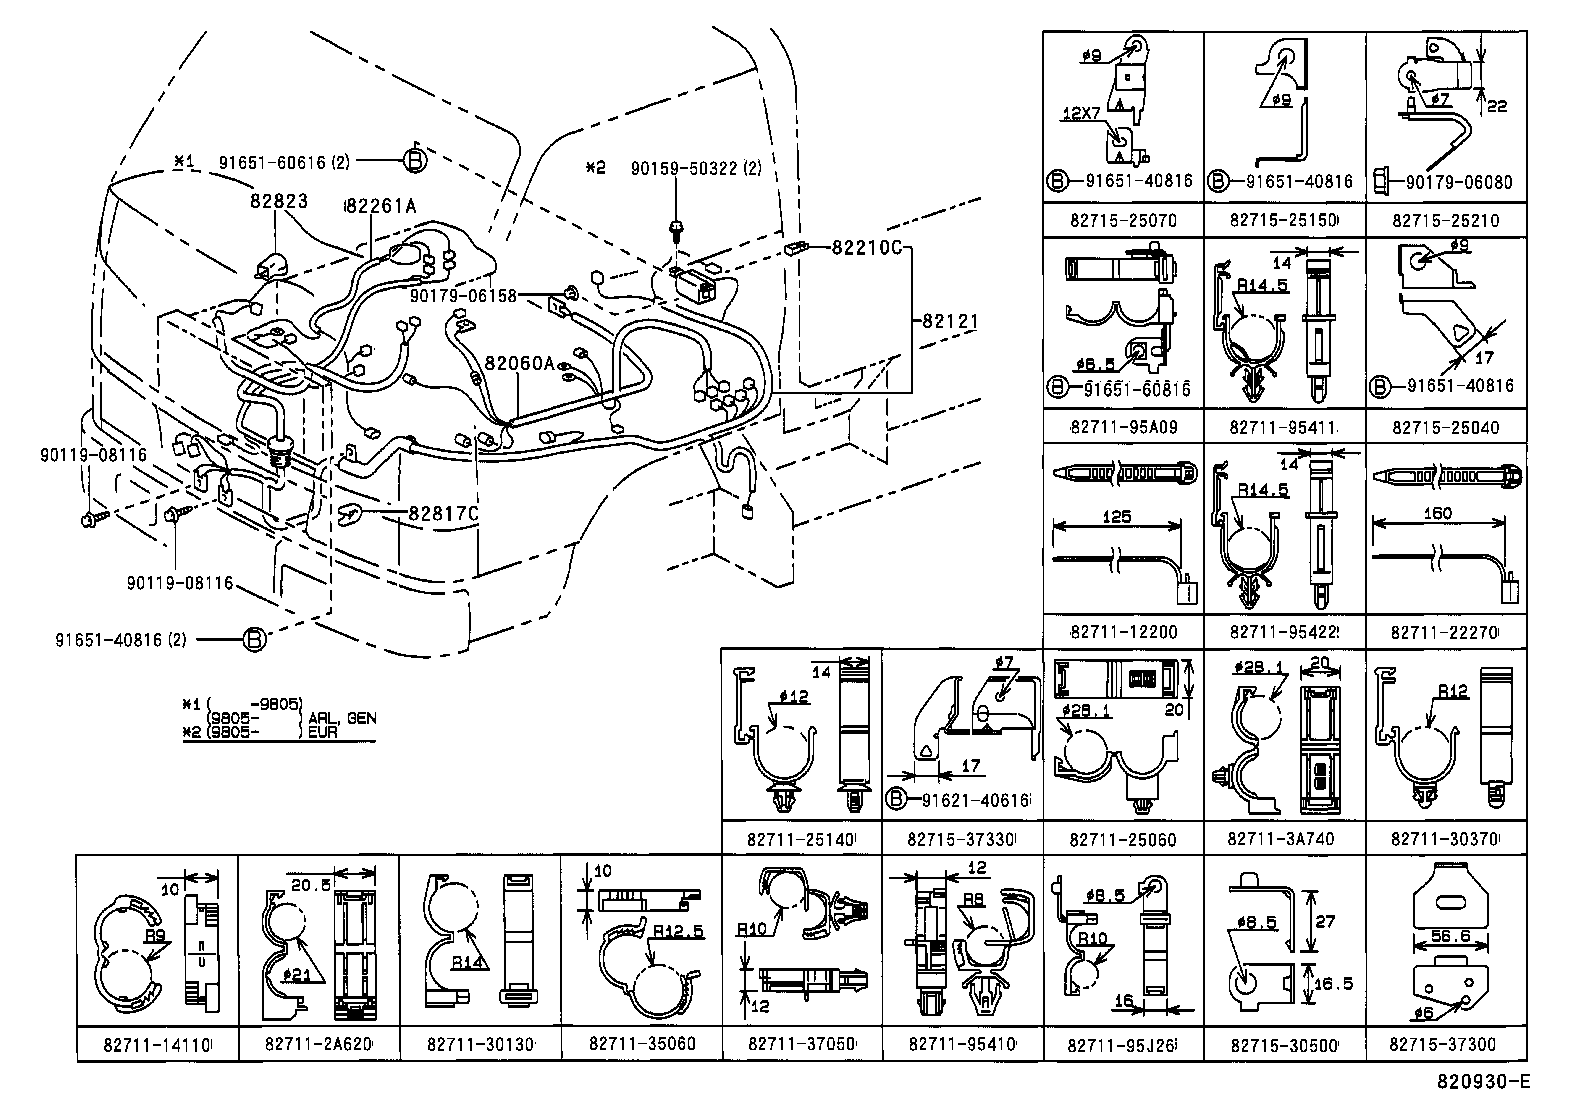 toyota dyna wiring diagram   26 wiring diagram images